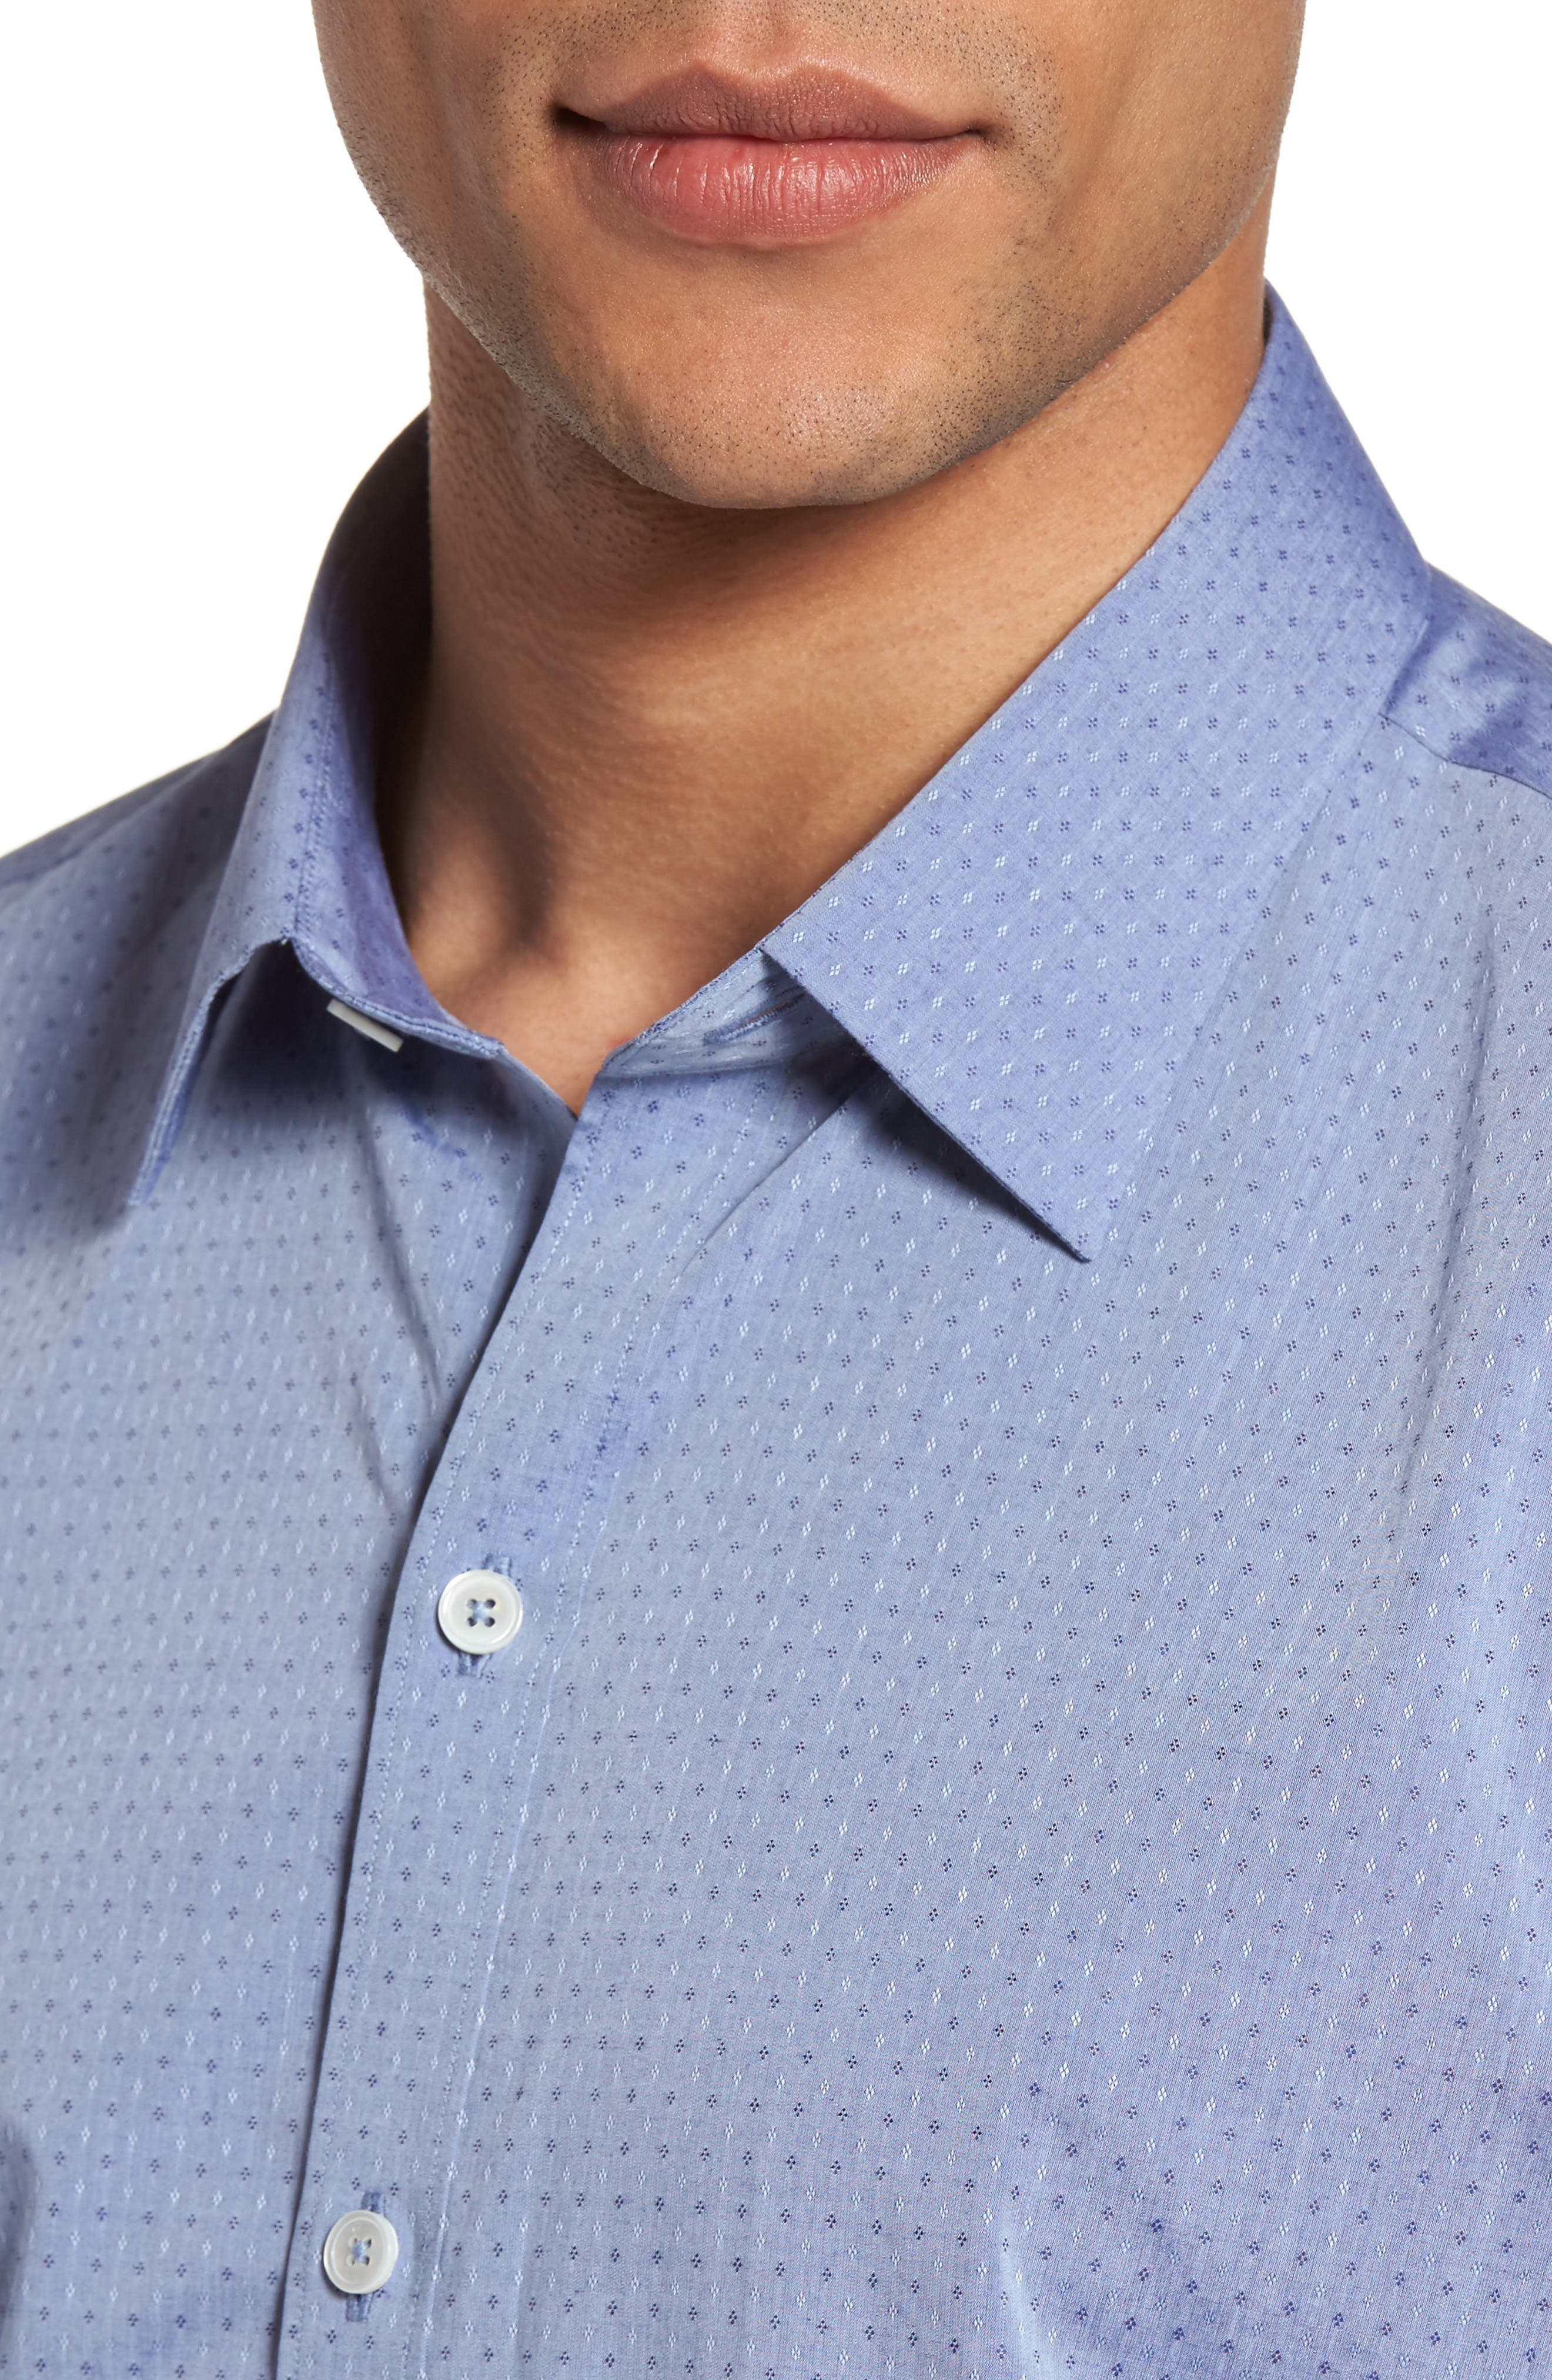 Diamond Print Short Sleeve Sport Shirt,                             Alternate thumbnail 4, color,                             400